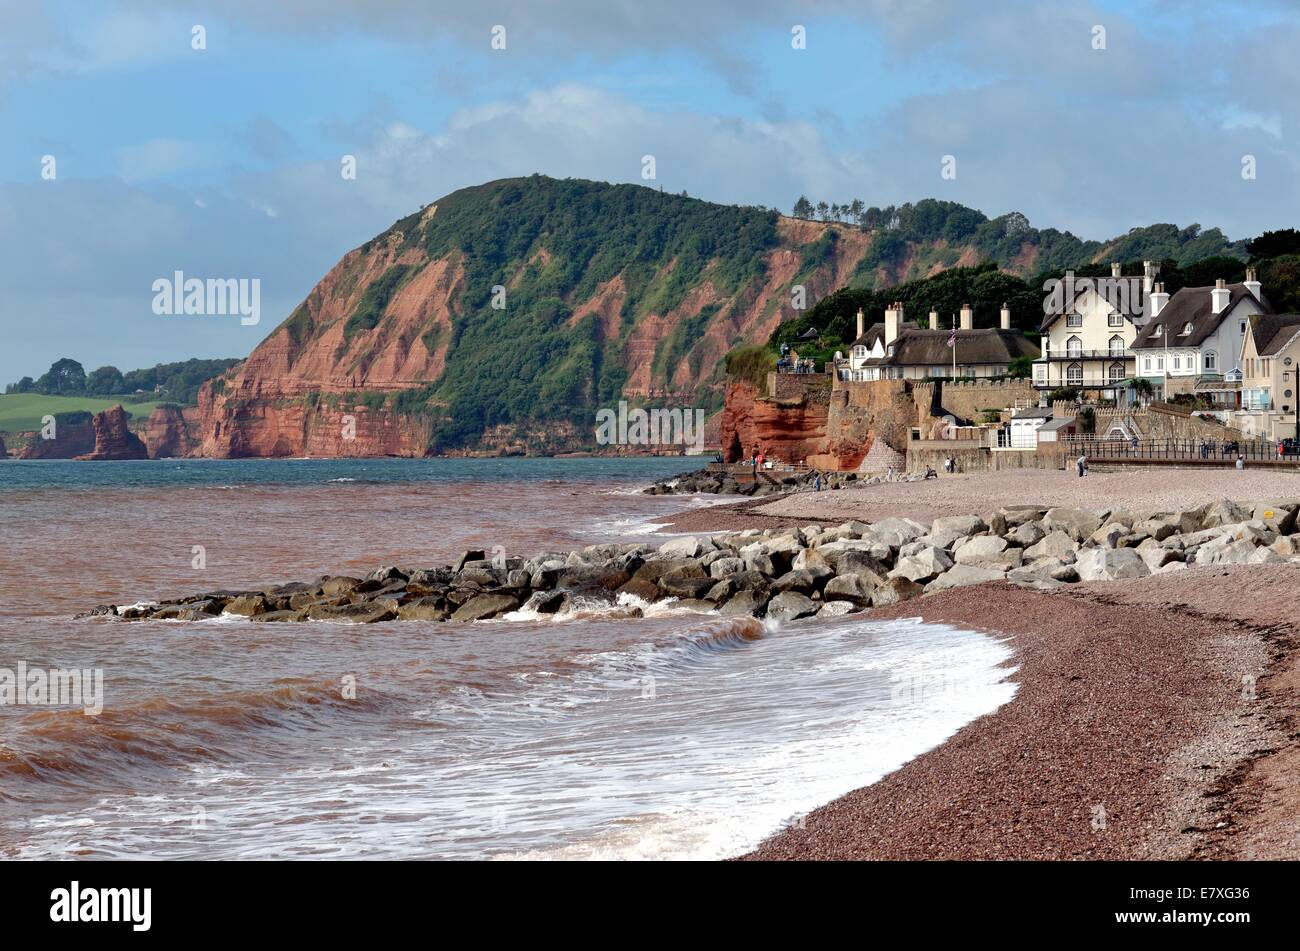 Seafront at Sidmouth Devon UK - Stock Image